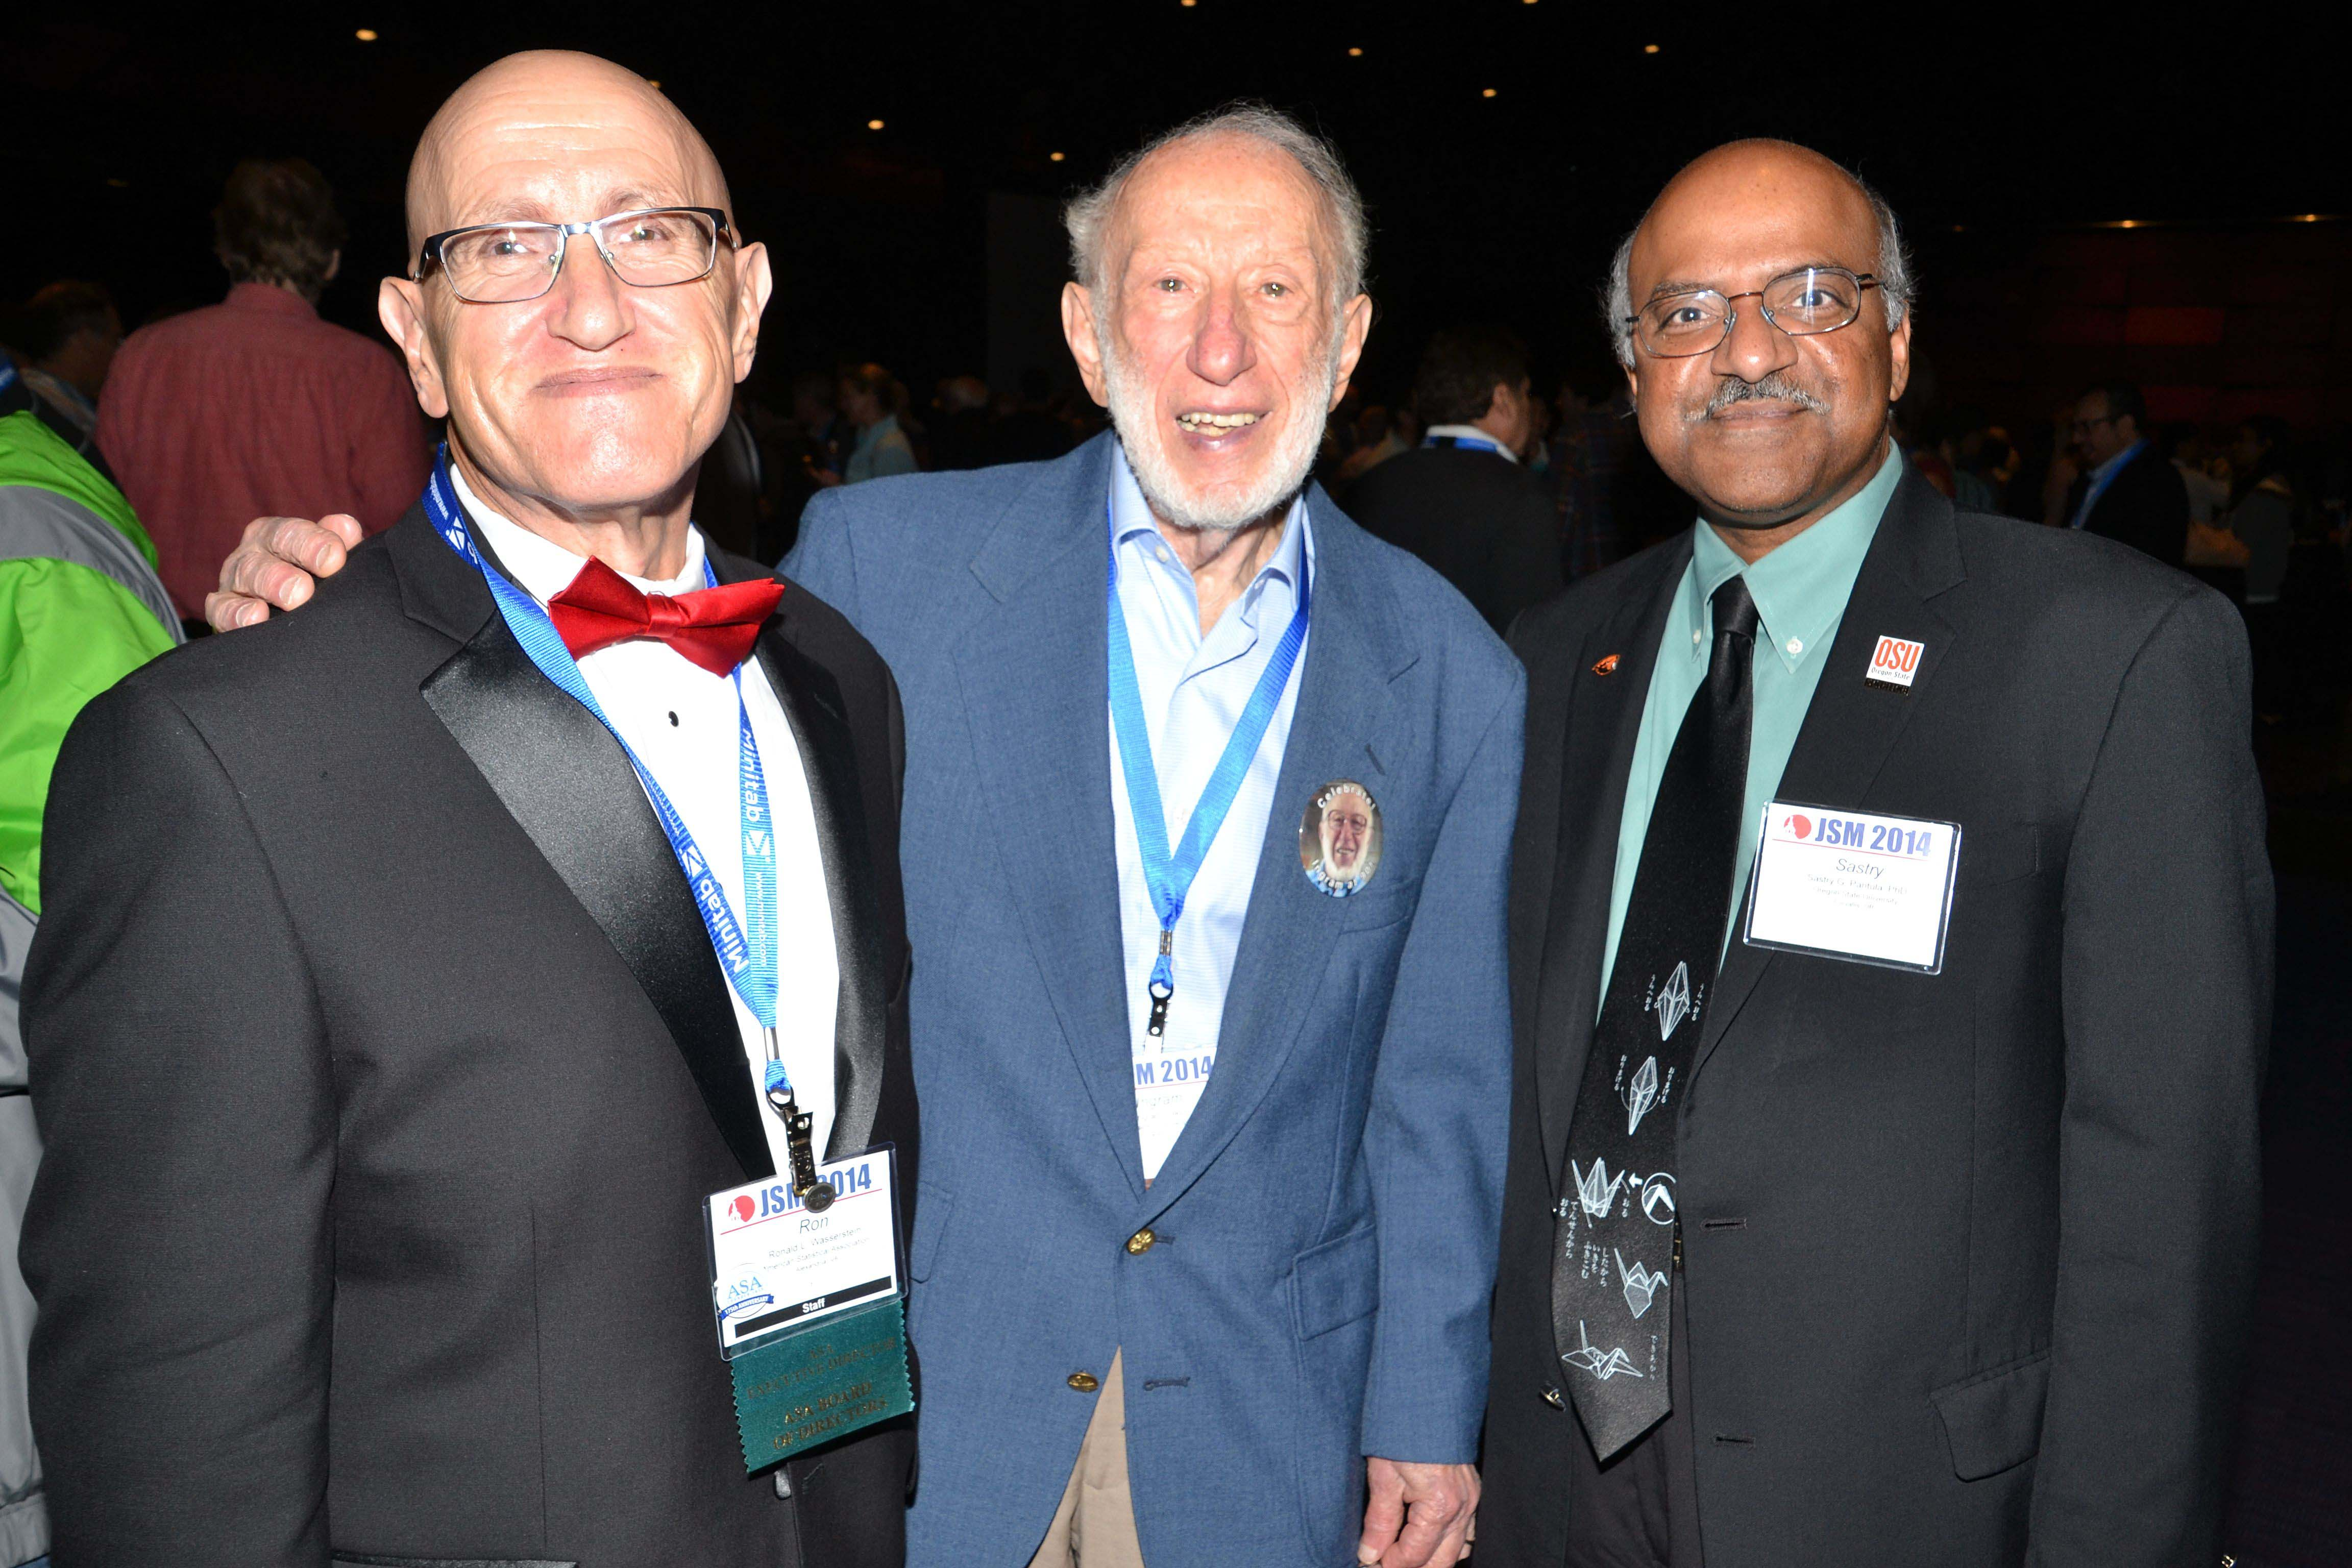 From left: Ron Wasserstein, Ingram Olkin, and Sastry Pantula attend the Opening Mixer